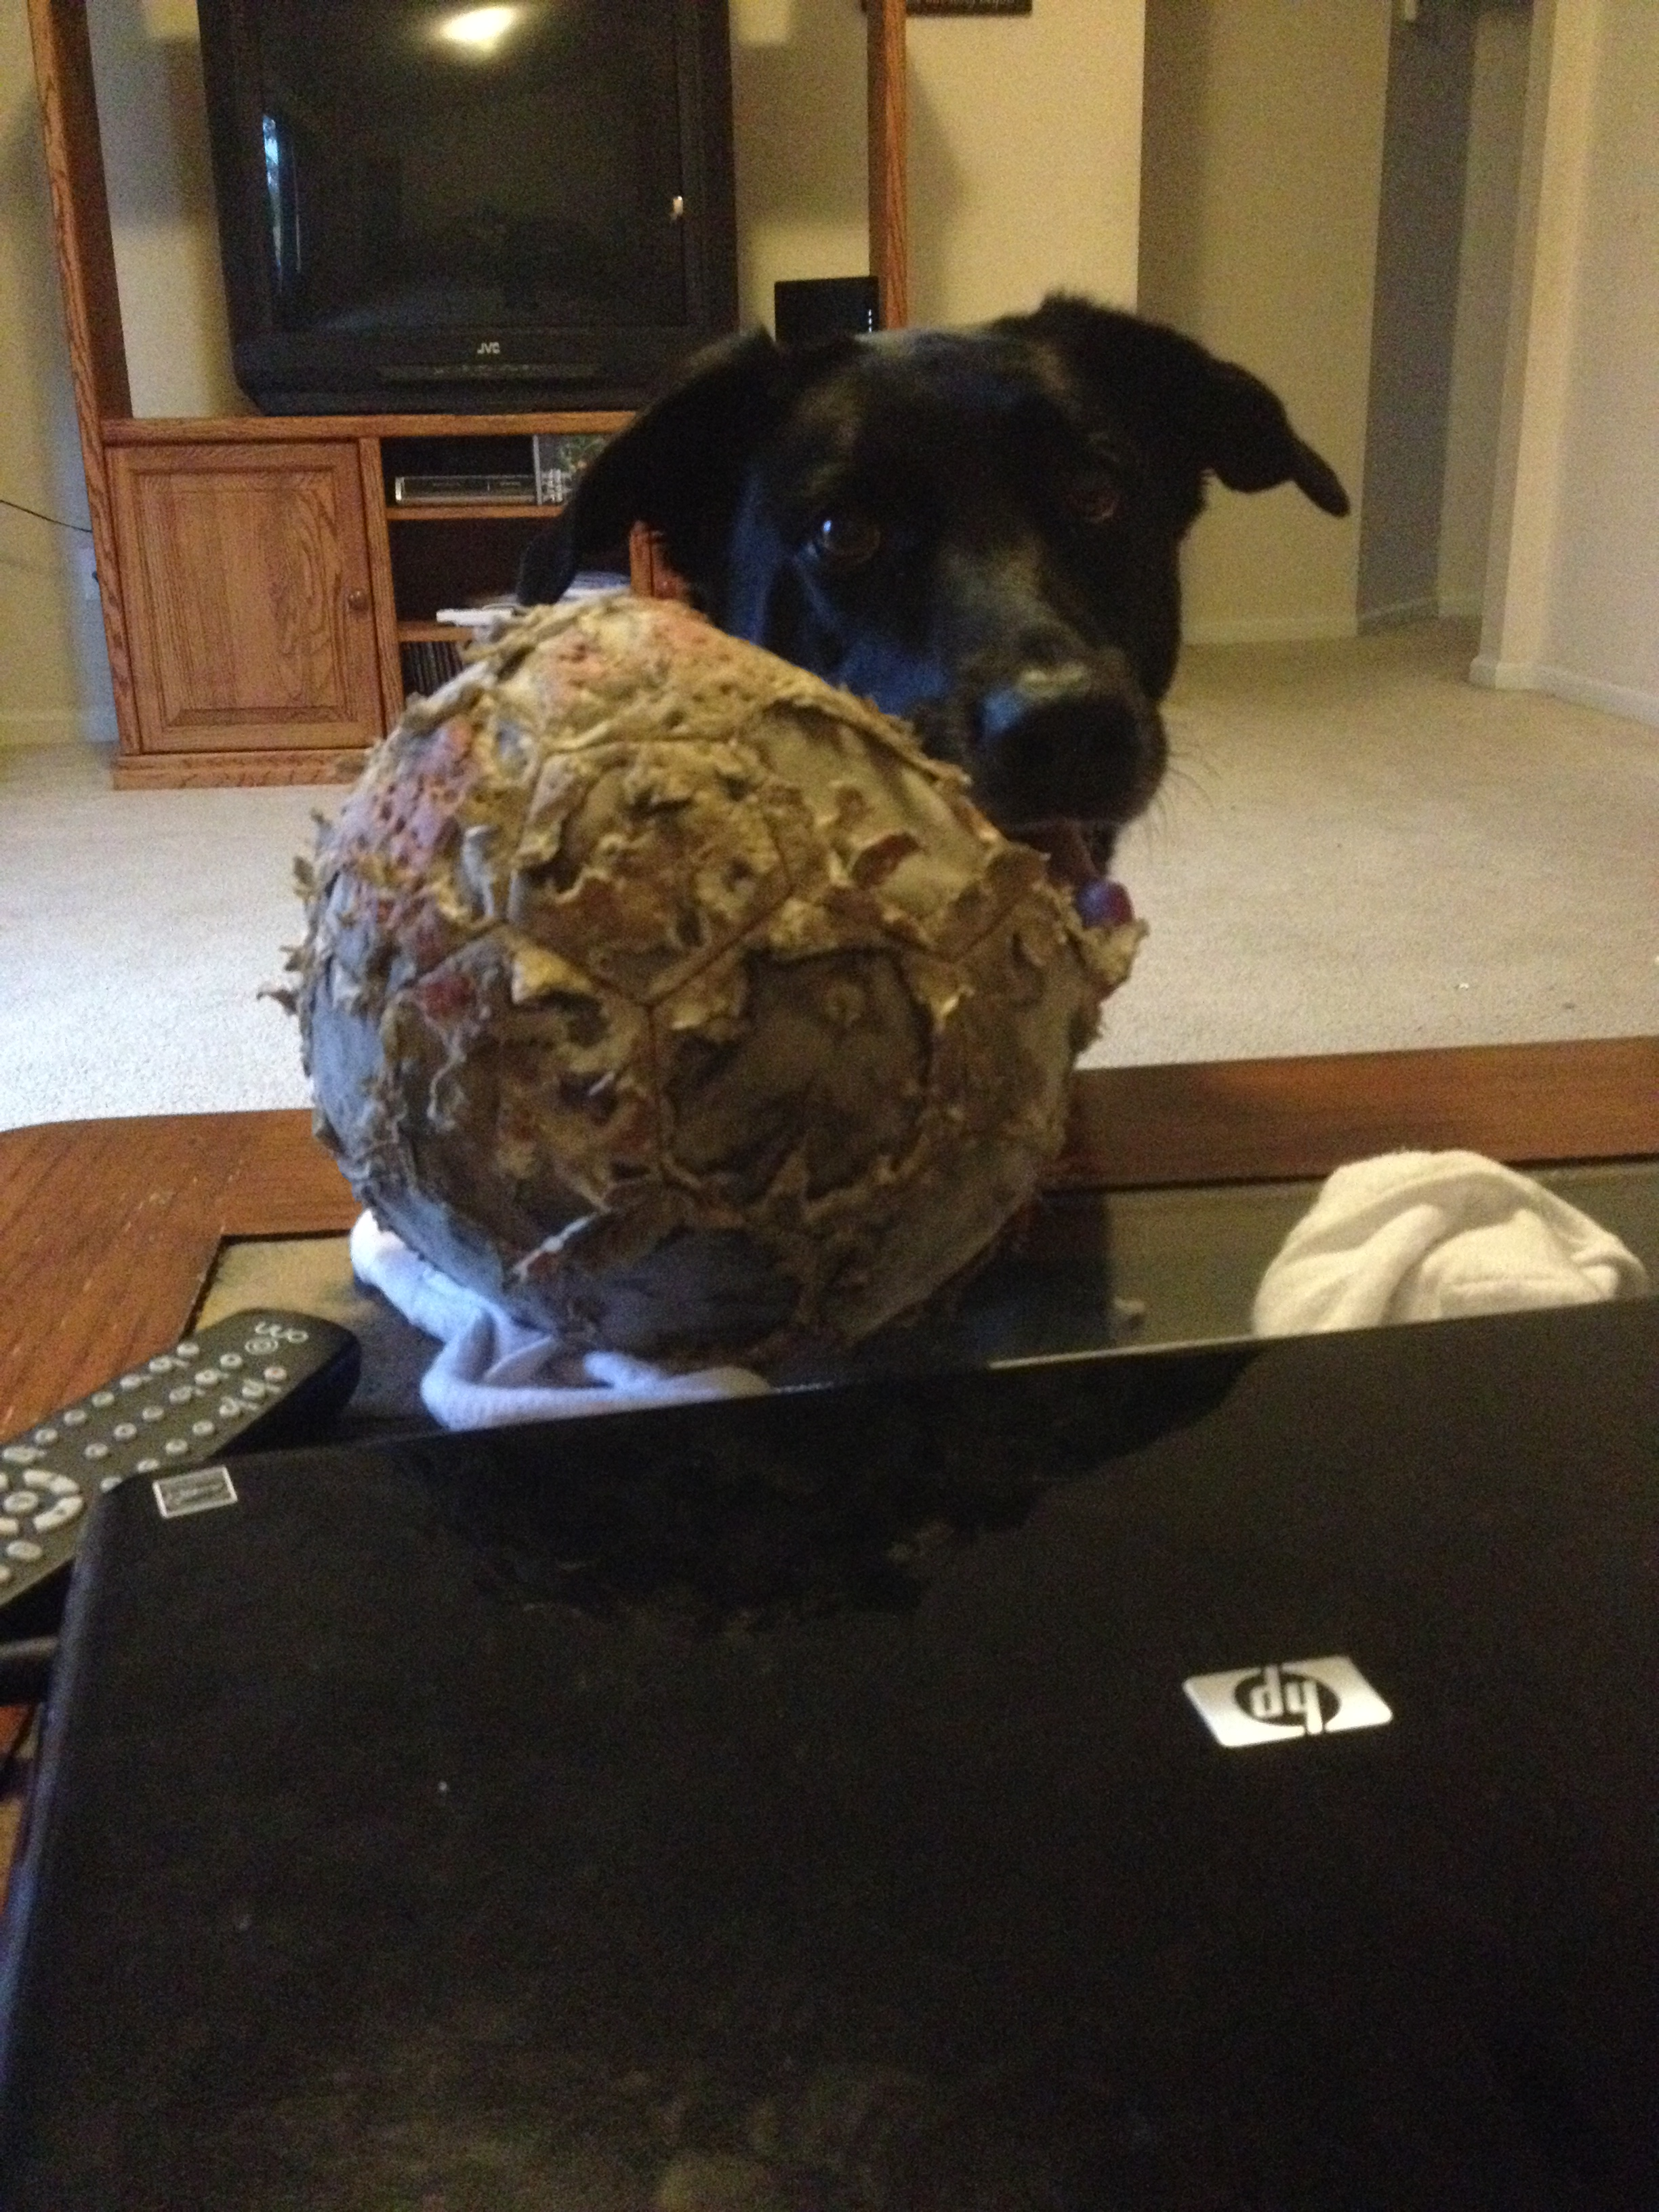 Bud with ball